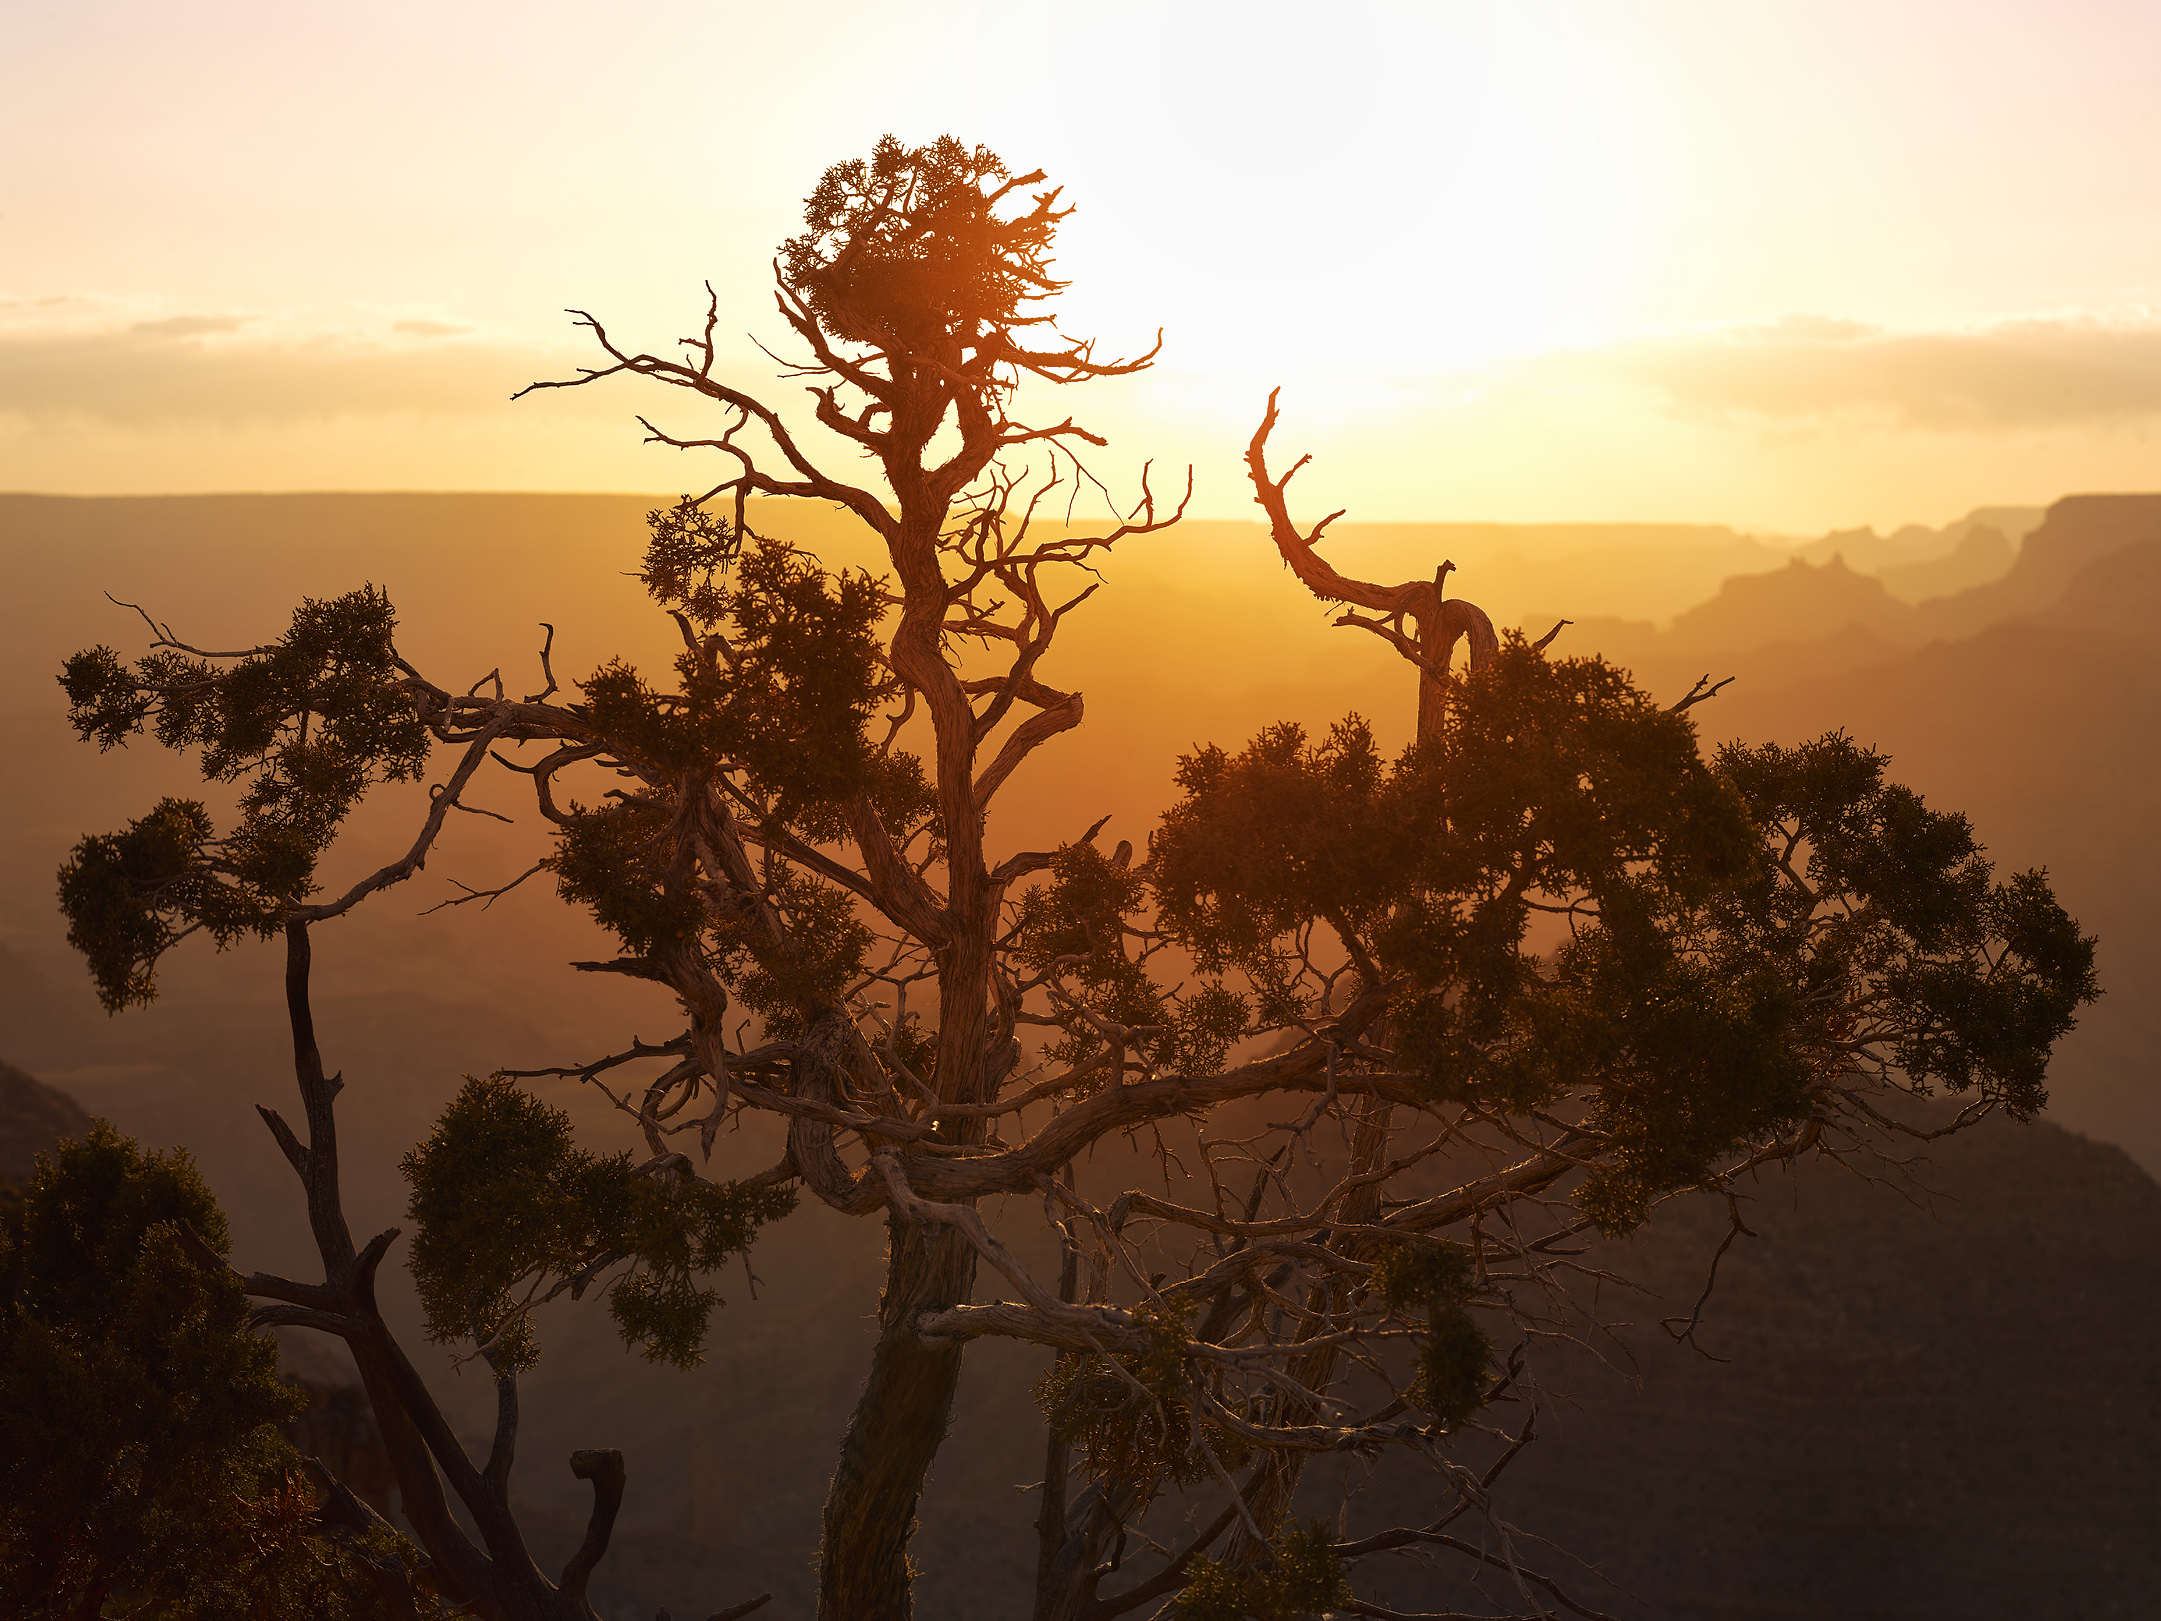 photo of a juniper tree at sunset at the grand canyon arizona. Arizona landscape photography by Travis Neely